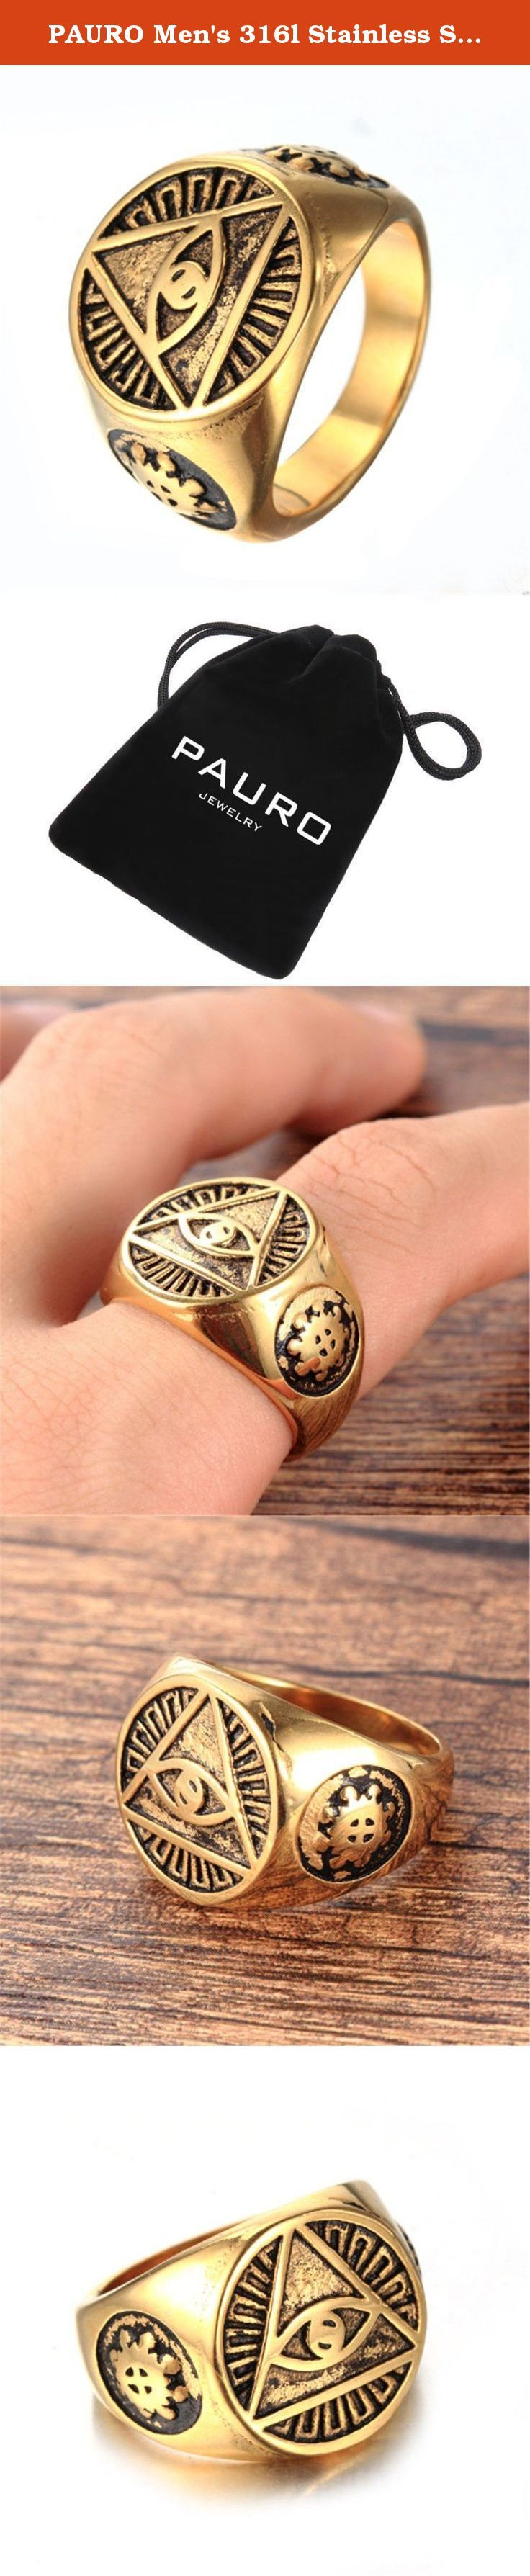 PAURO Men's 316l Stainless Steel All Seeing Triangle Eye of Providence Ring Gold Size 11. Why choose 316l stainless steel jewelry? 1. 316l stainless steel jewelry does not tarnish and oxidize, which can last longer than other jewelries. 2. It is able to endure a lot of wear and tear. 3. It is amazingly hypoallergenic. Such advantages make 316l stainless steel jewelry more popular nowadays. Got here a stainless steel ring that will last for many years. Warm tips: 1. Gently, avoid friction…